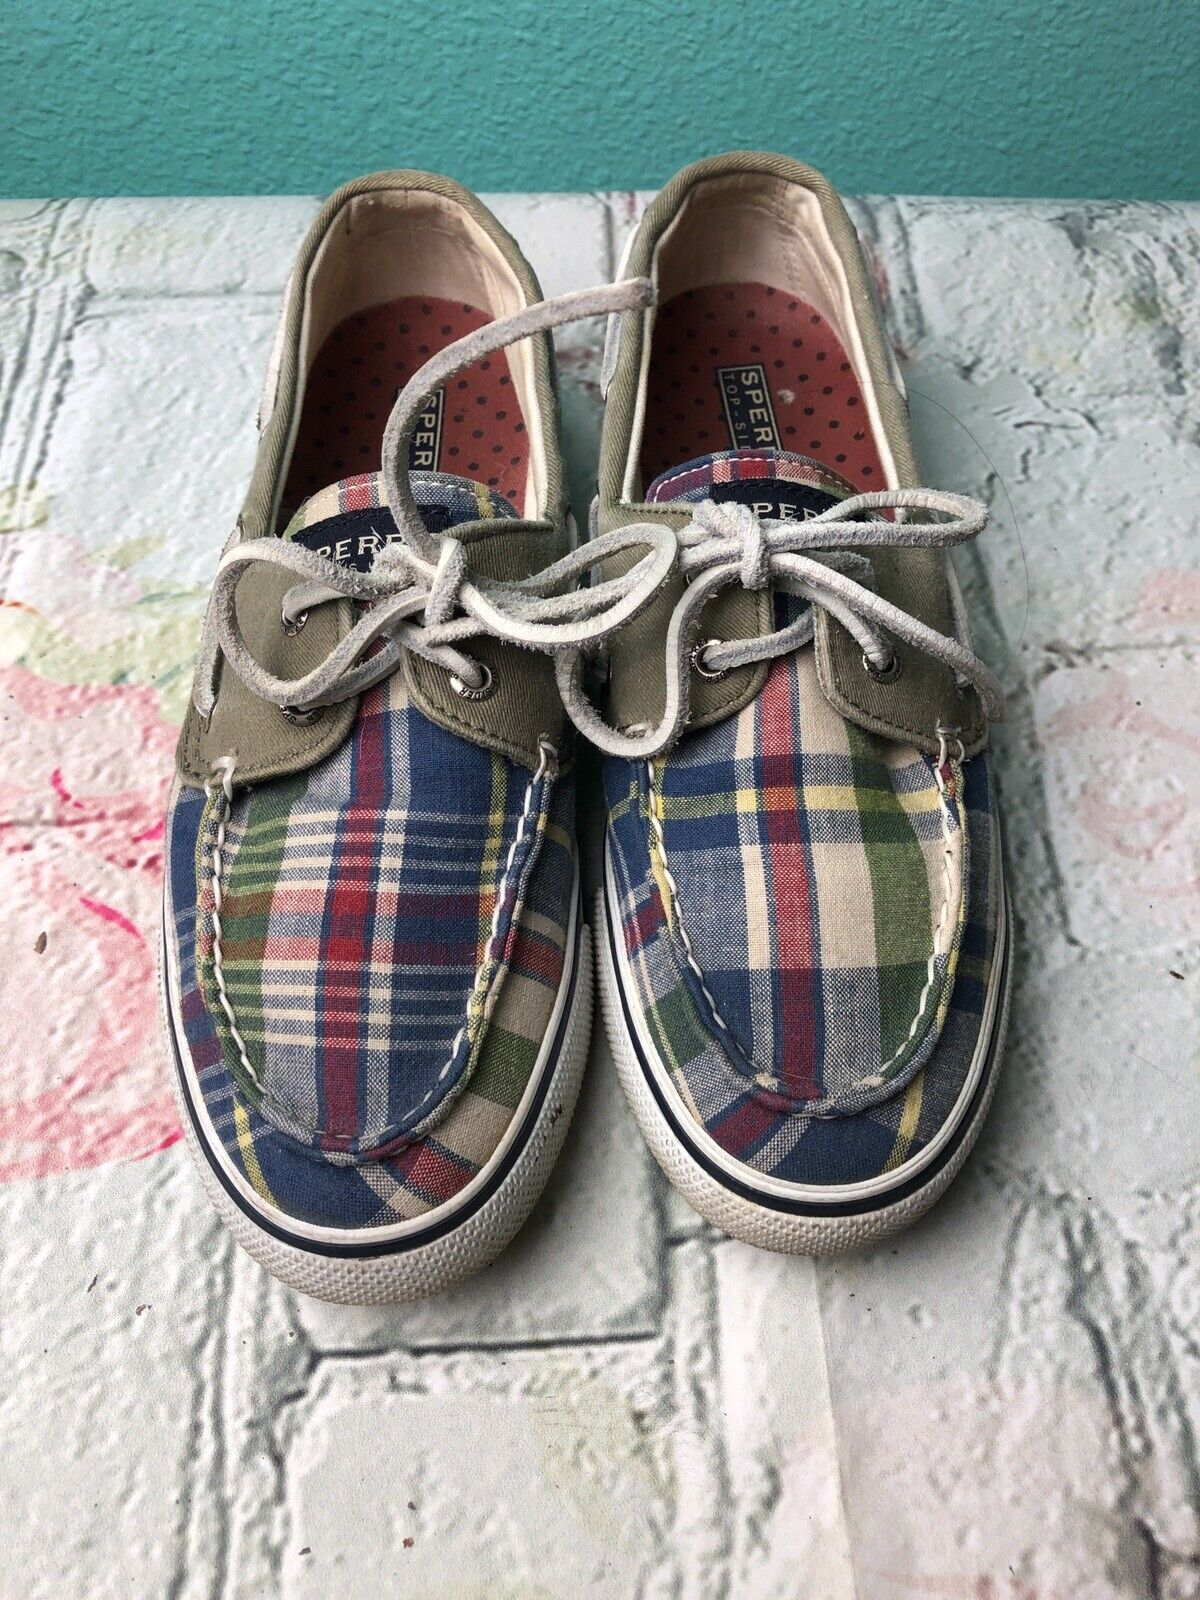 Women's Sperry Top Sider Size 6 1/2 Boat Shoes Plaid Leather Lace up